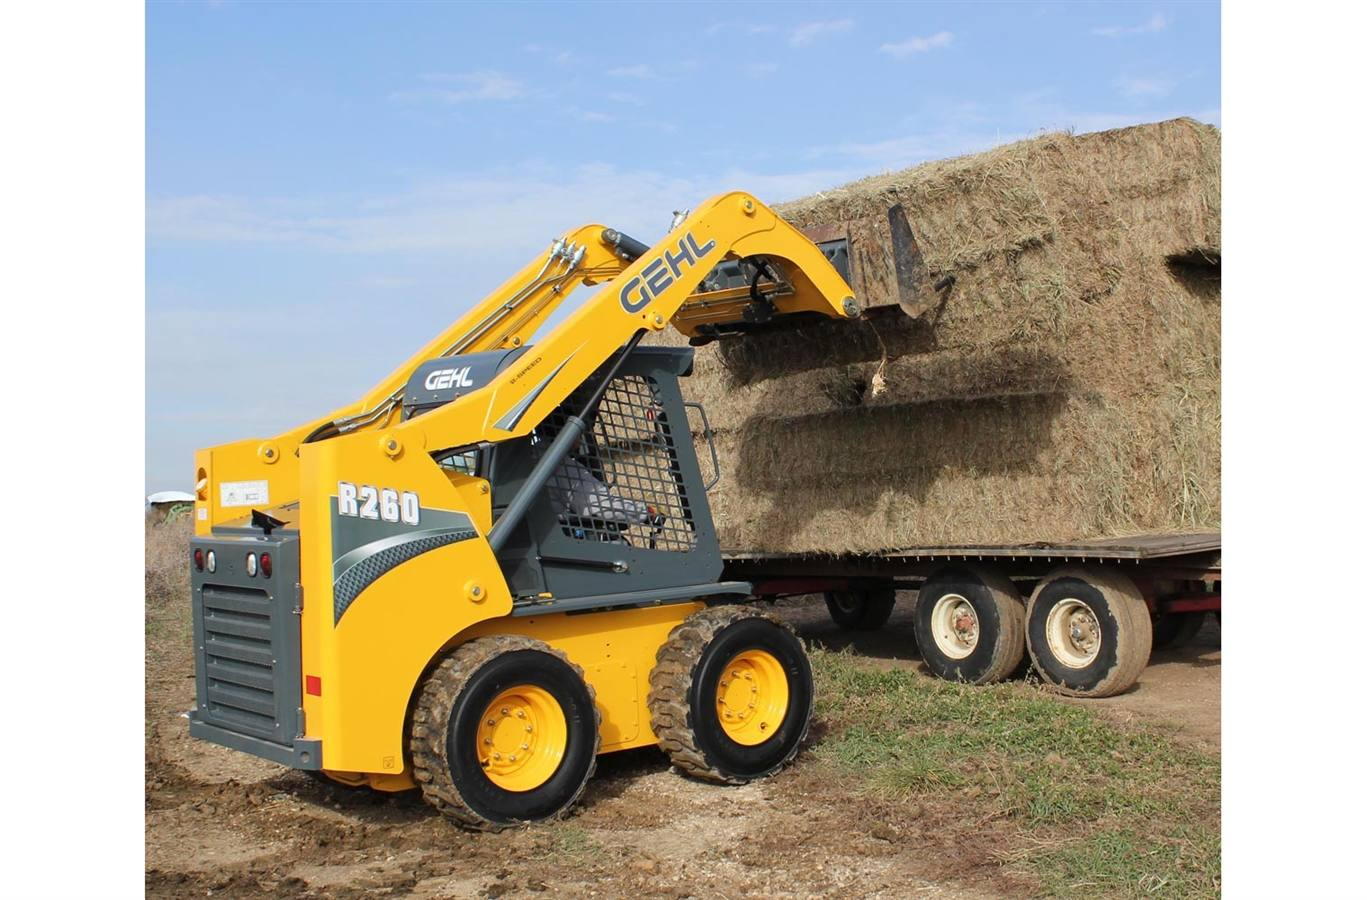 2018 Gehl R260 Skid Loader for sale in Harlan, IA  Nelson